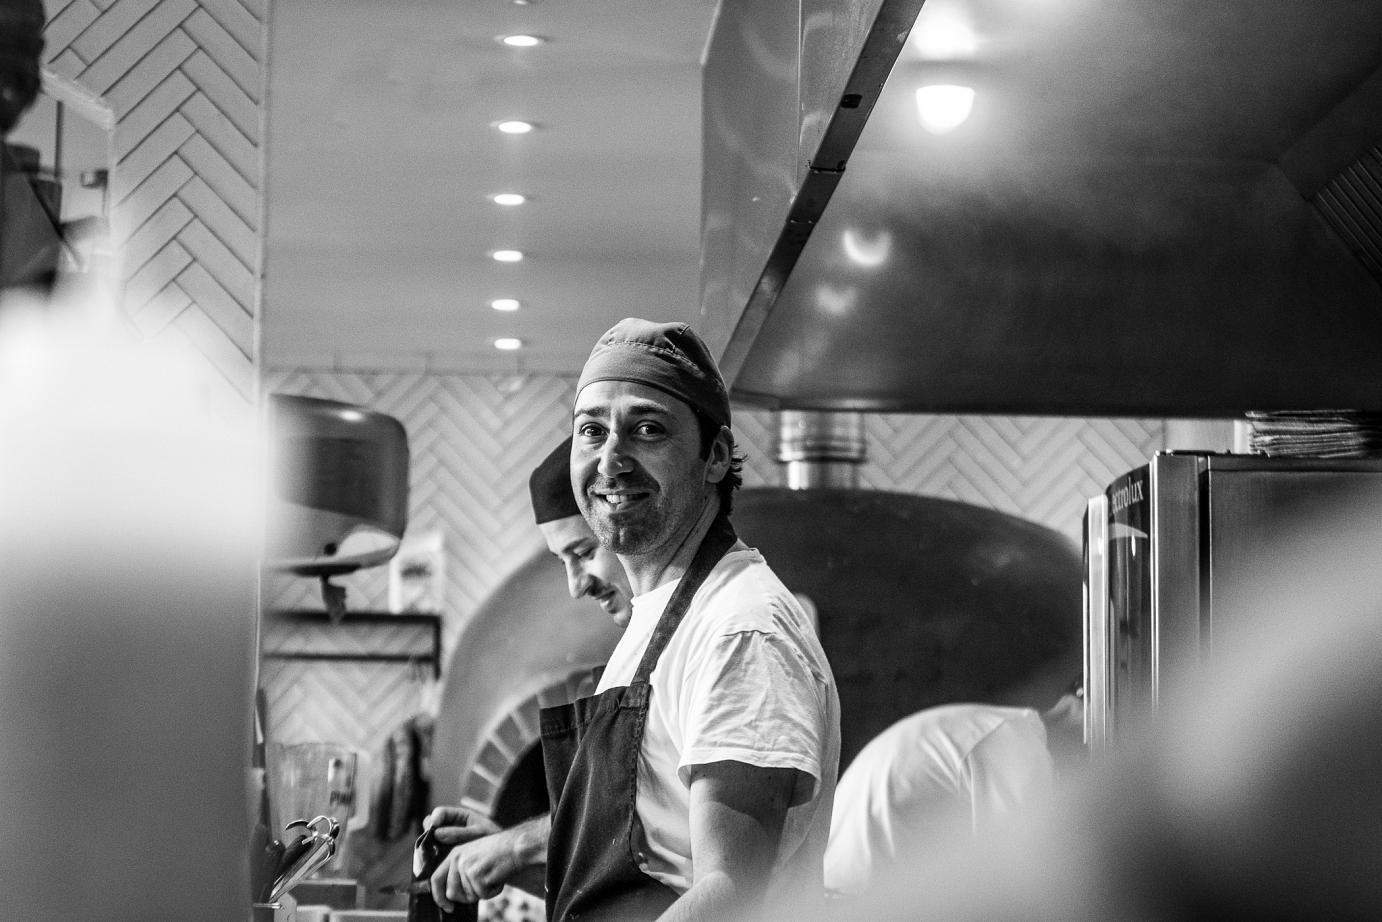 Chef with pizza oven